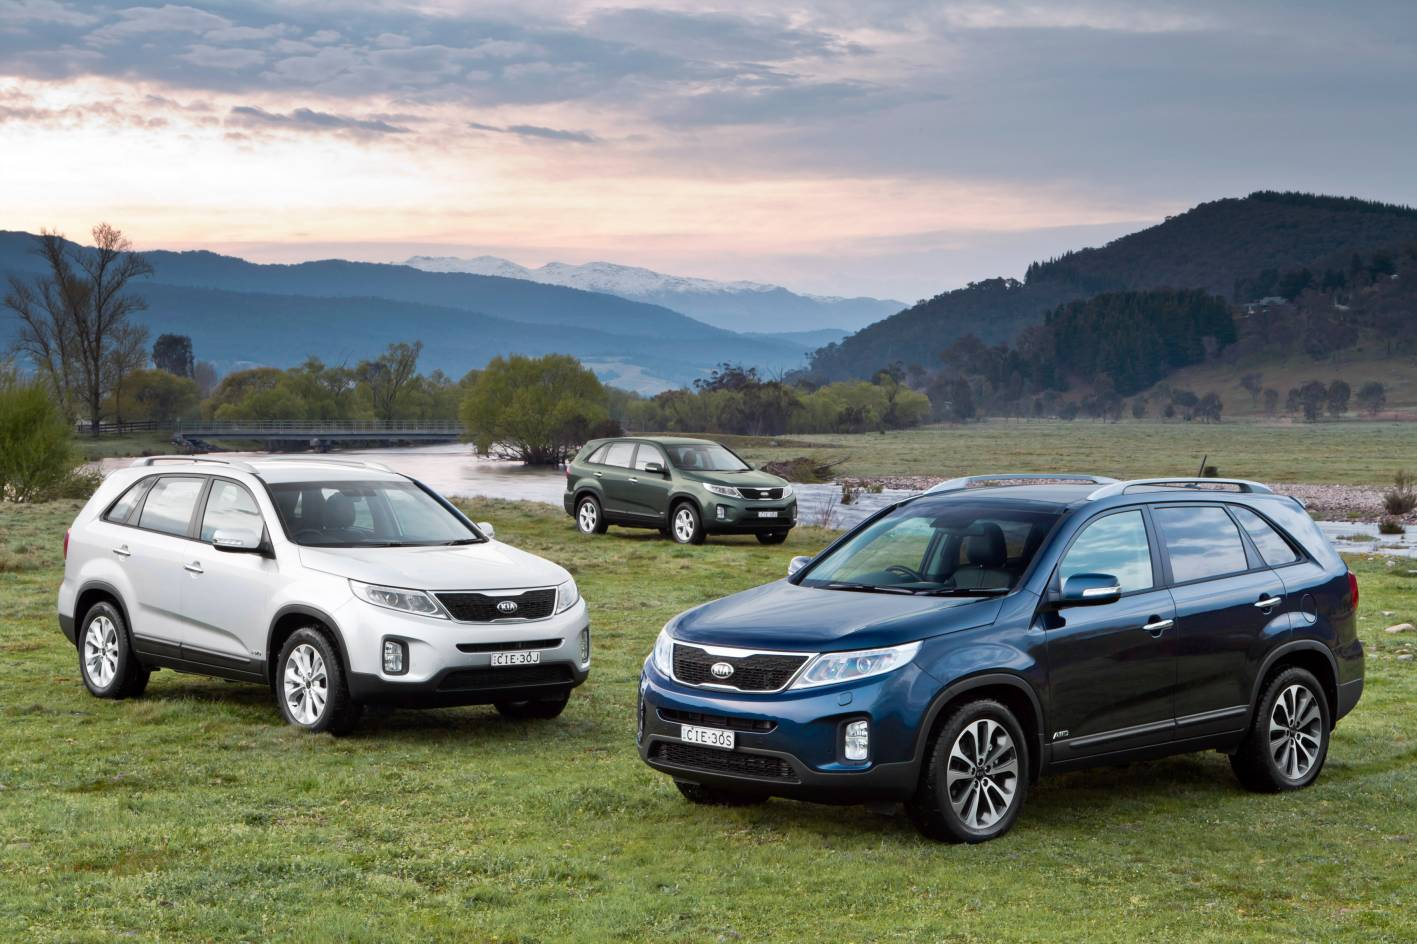 The new updated Kia Sorento has reached Australian shores, with fresh